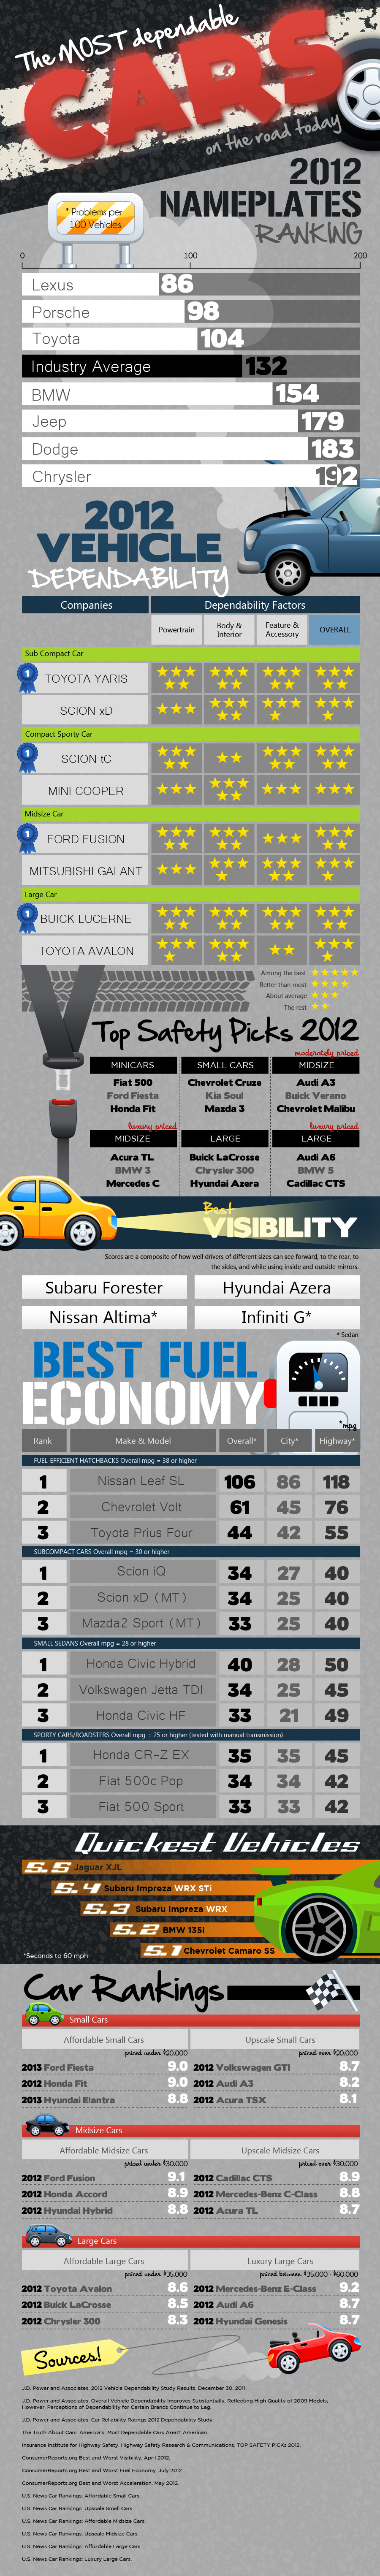 The most dependable cars on the road today